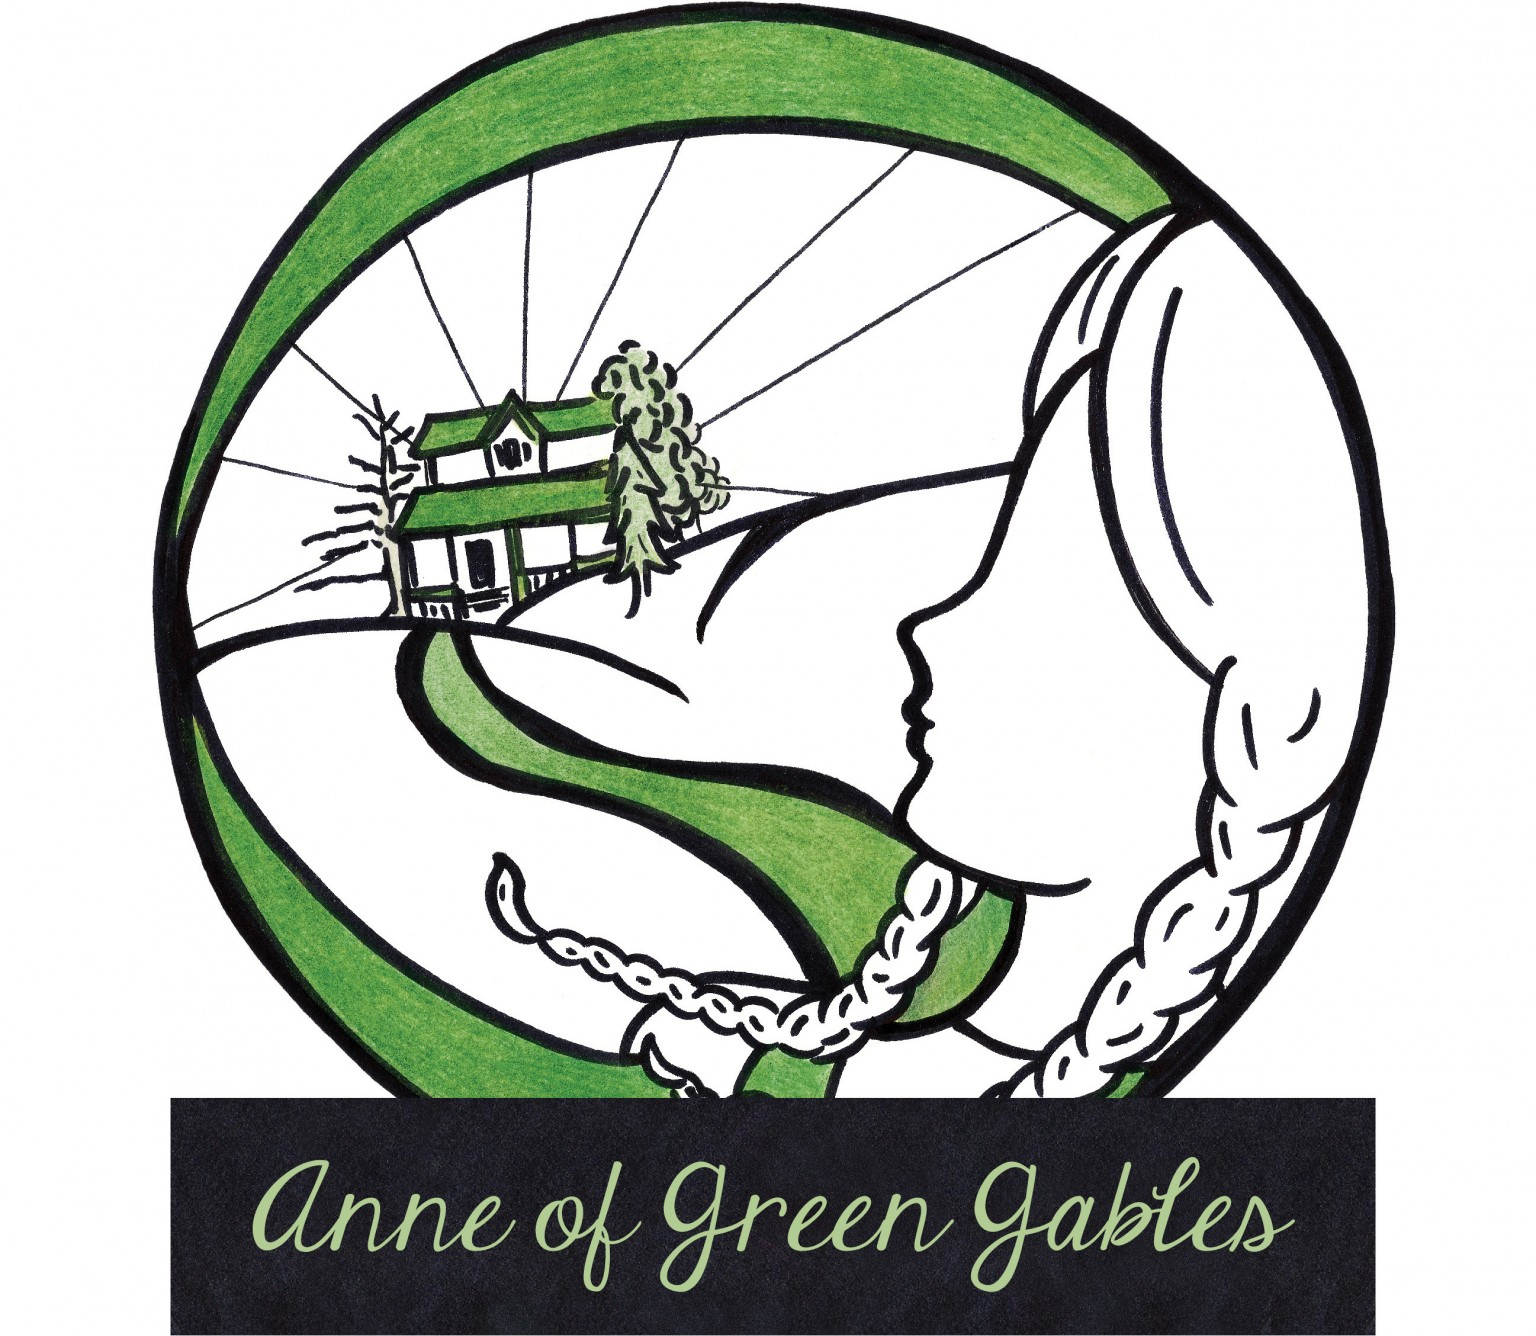 anne of green gables belonging All she's ever wanted is to belong somewhere  montgomery's first novel, anne  of green gables, met with immediate critical and popular.